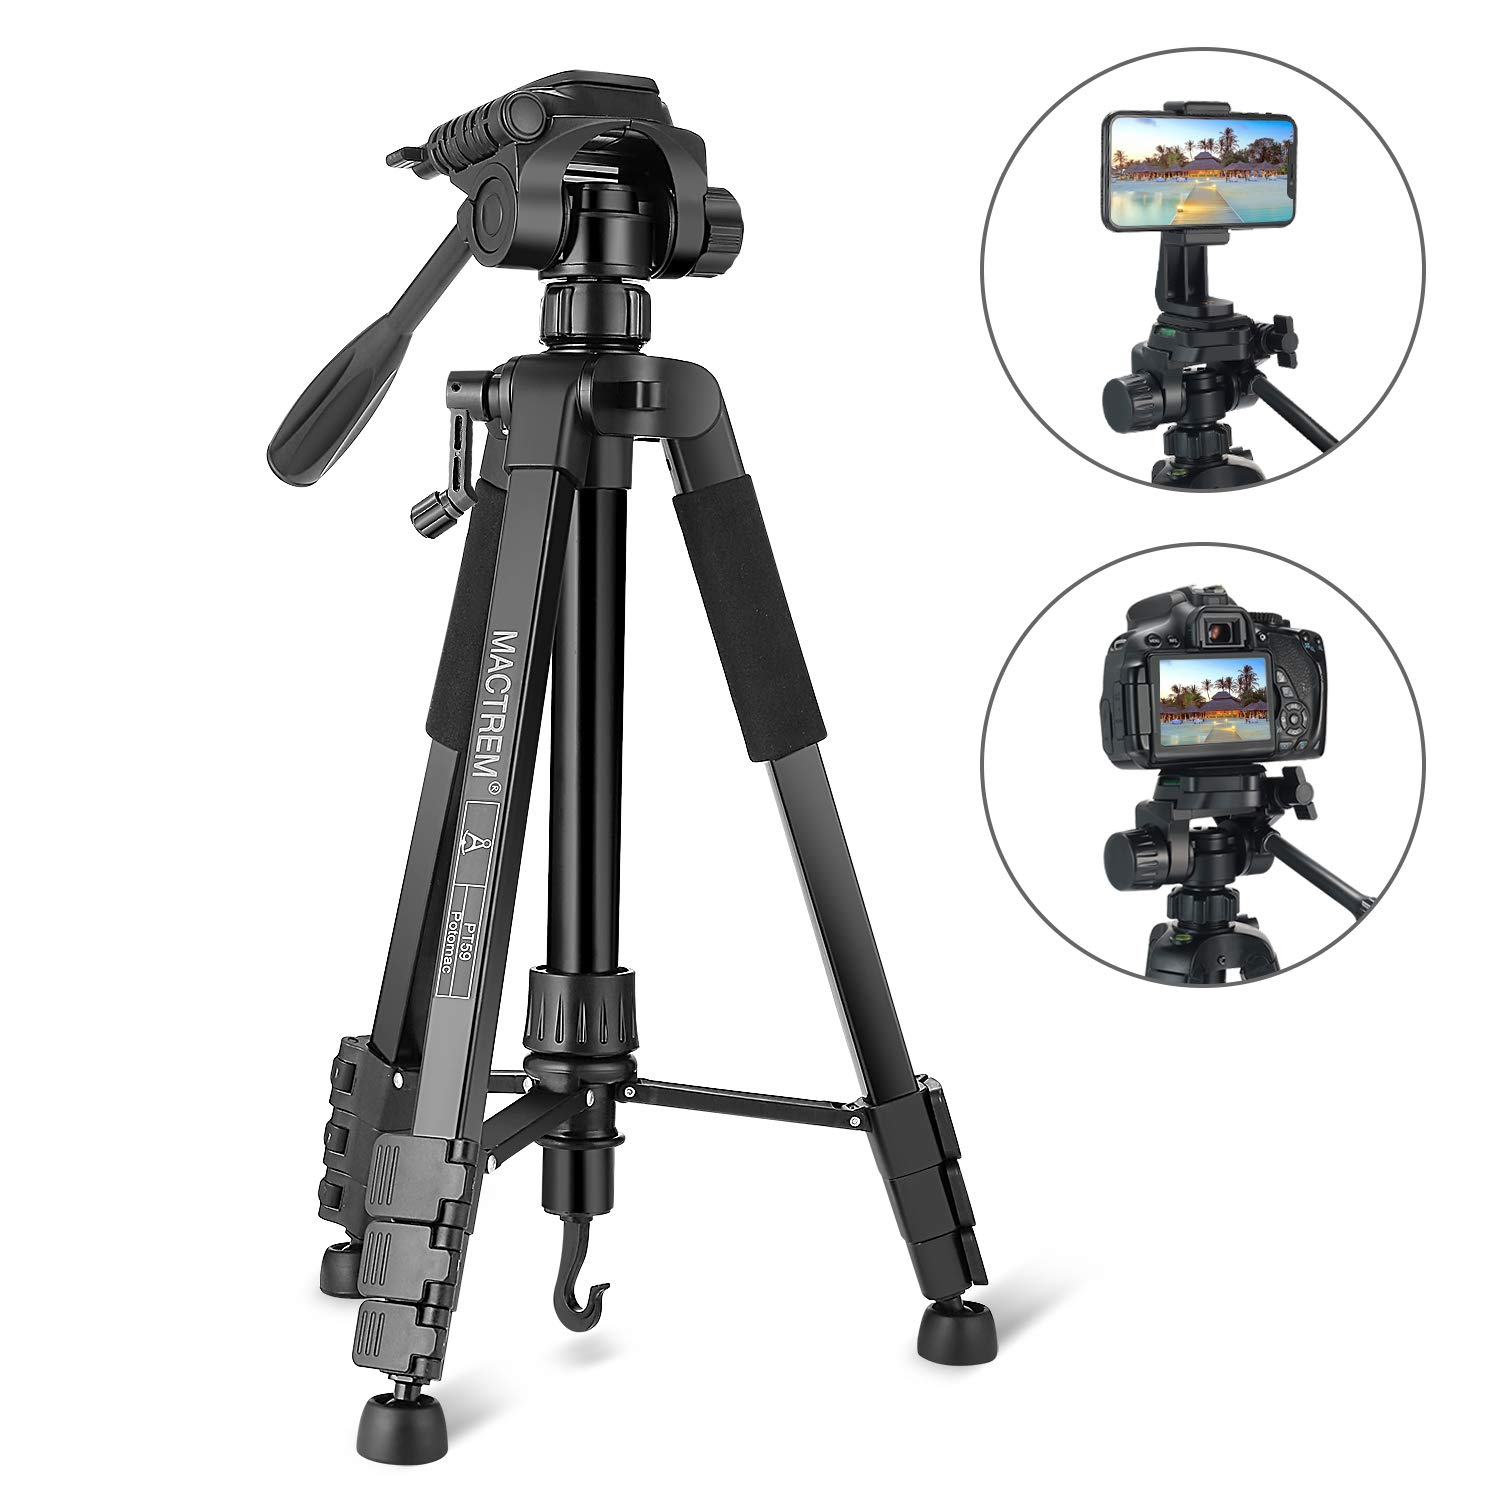 Tripod, Camera Tripod 59'' Portable Phone Tripod with Phone Holder, Video Tripod Compatible for Canon Nikon Sony Olympus DV, 360 Panorama, 2.69Lb Lightweight Aluminum Alloy with Travel Bag, 11Lb Load by MACTREM